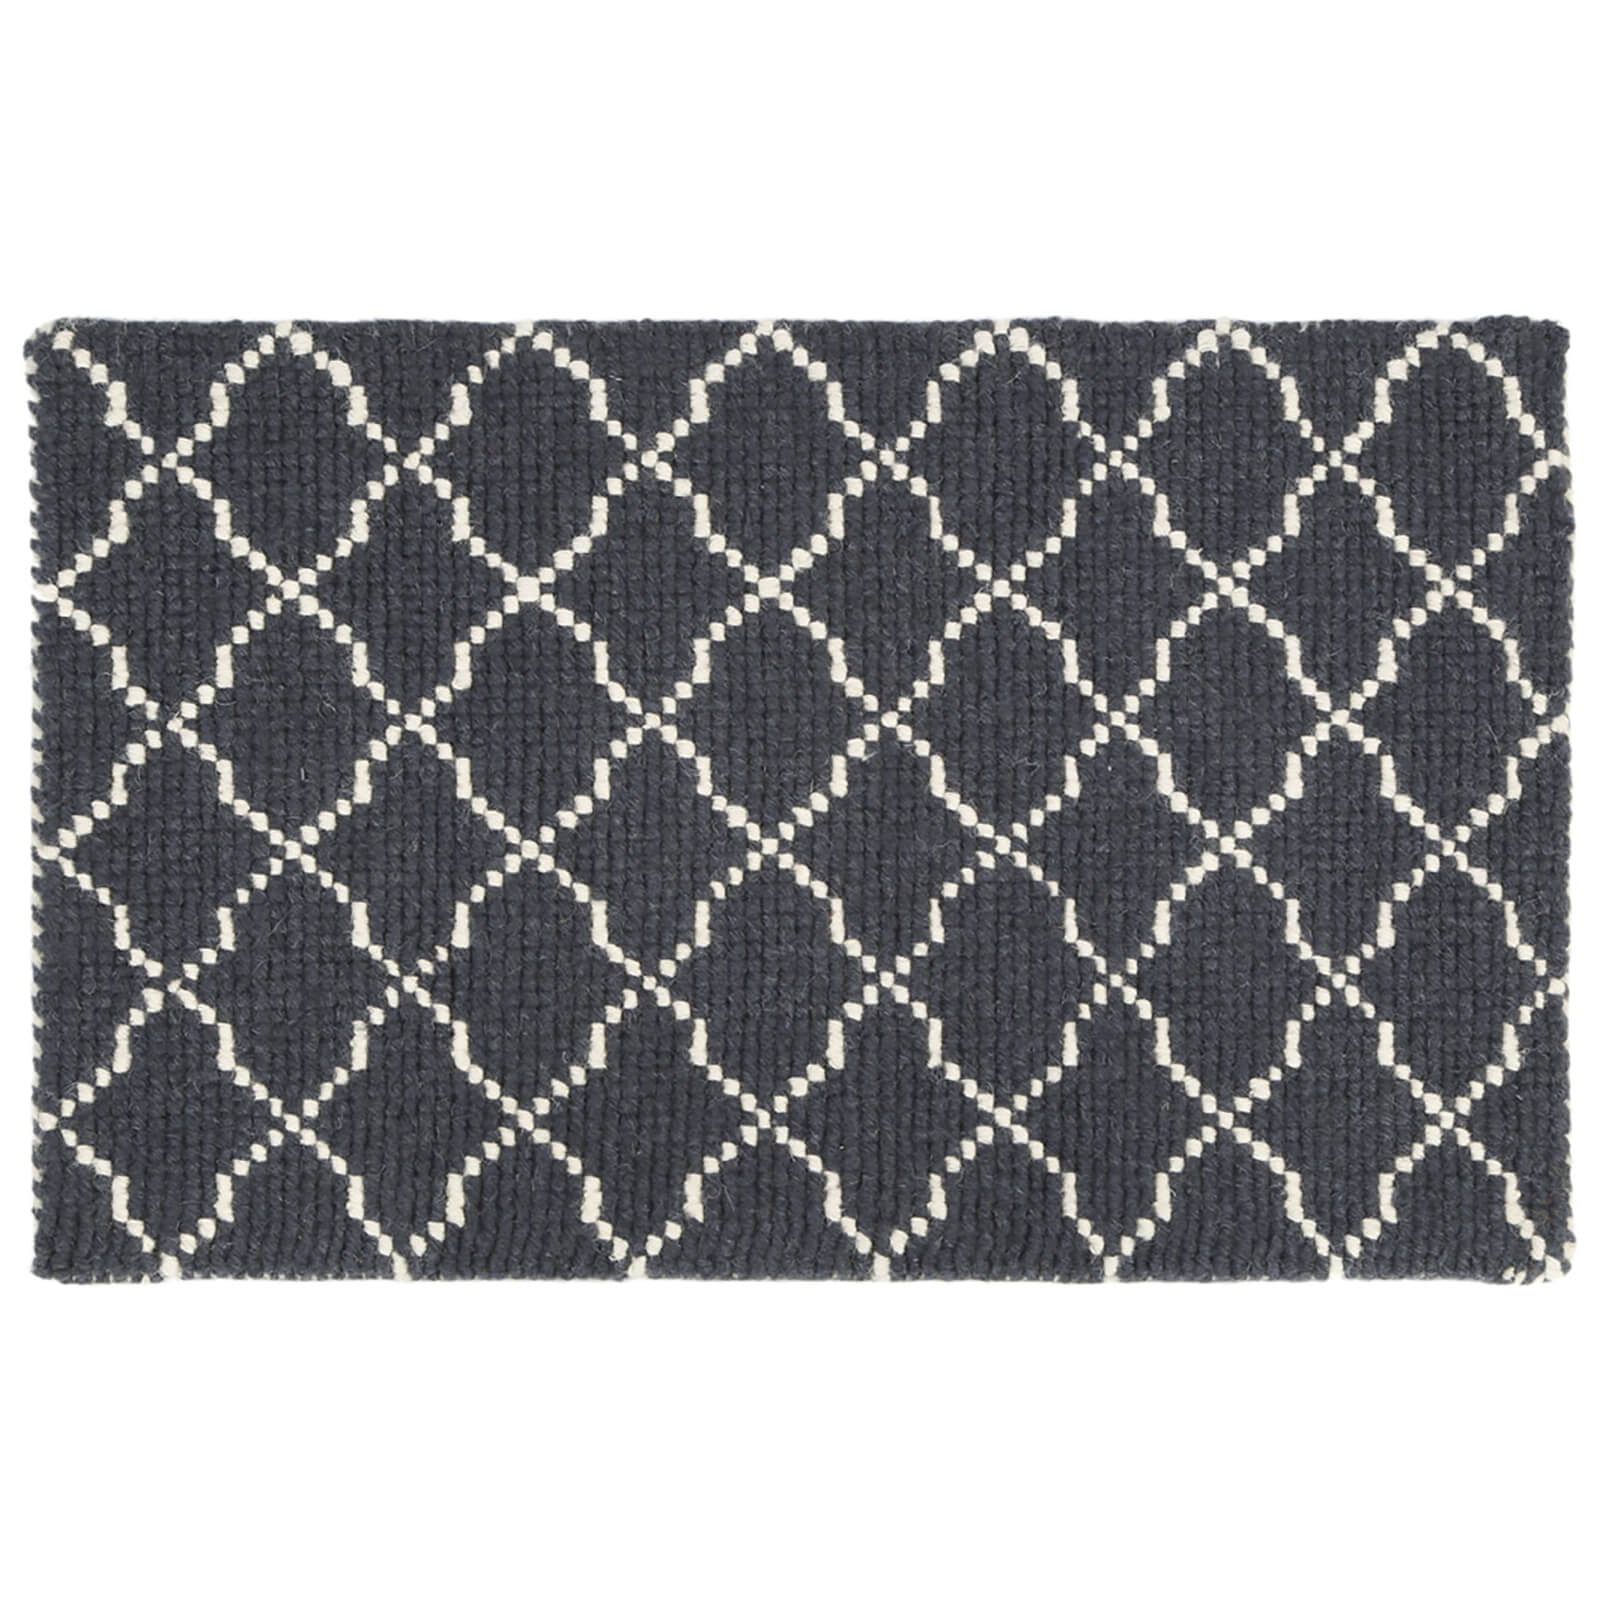 Fifty Five South Kensington Townhouse Cotton/Wool Mix Rug - Grey/White